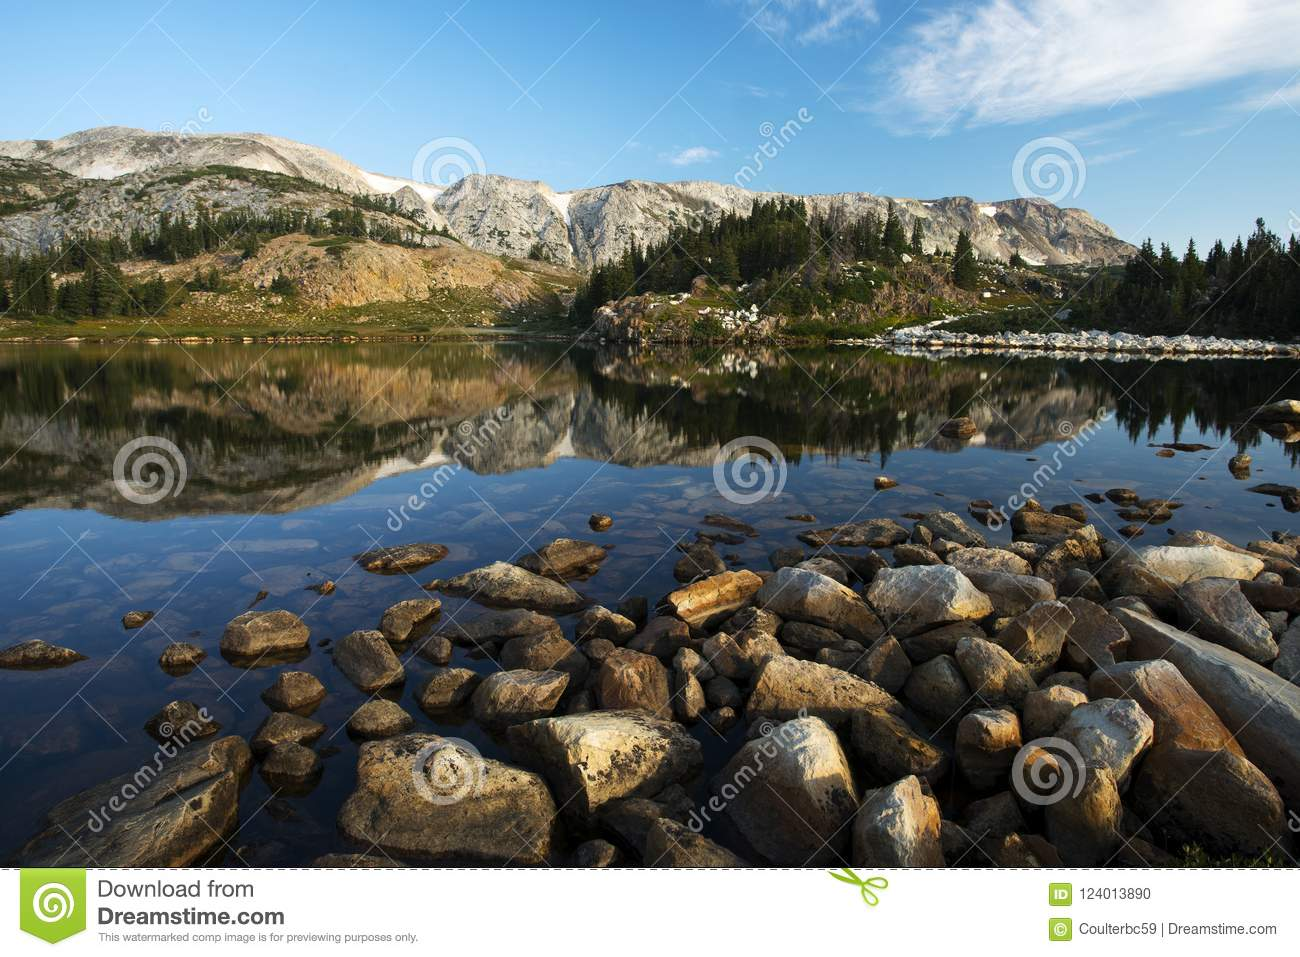 Libby Lake in Medicine Bow National Forest